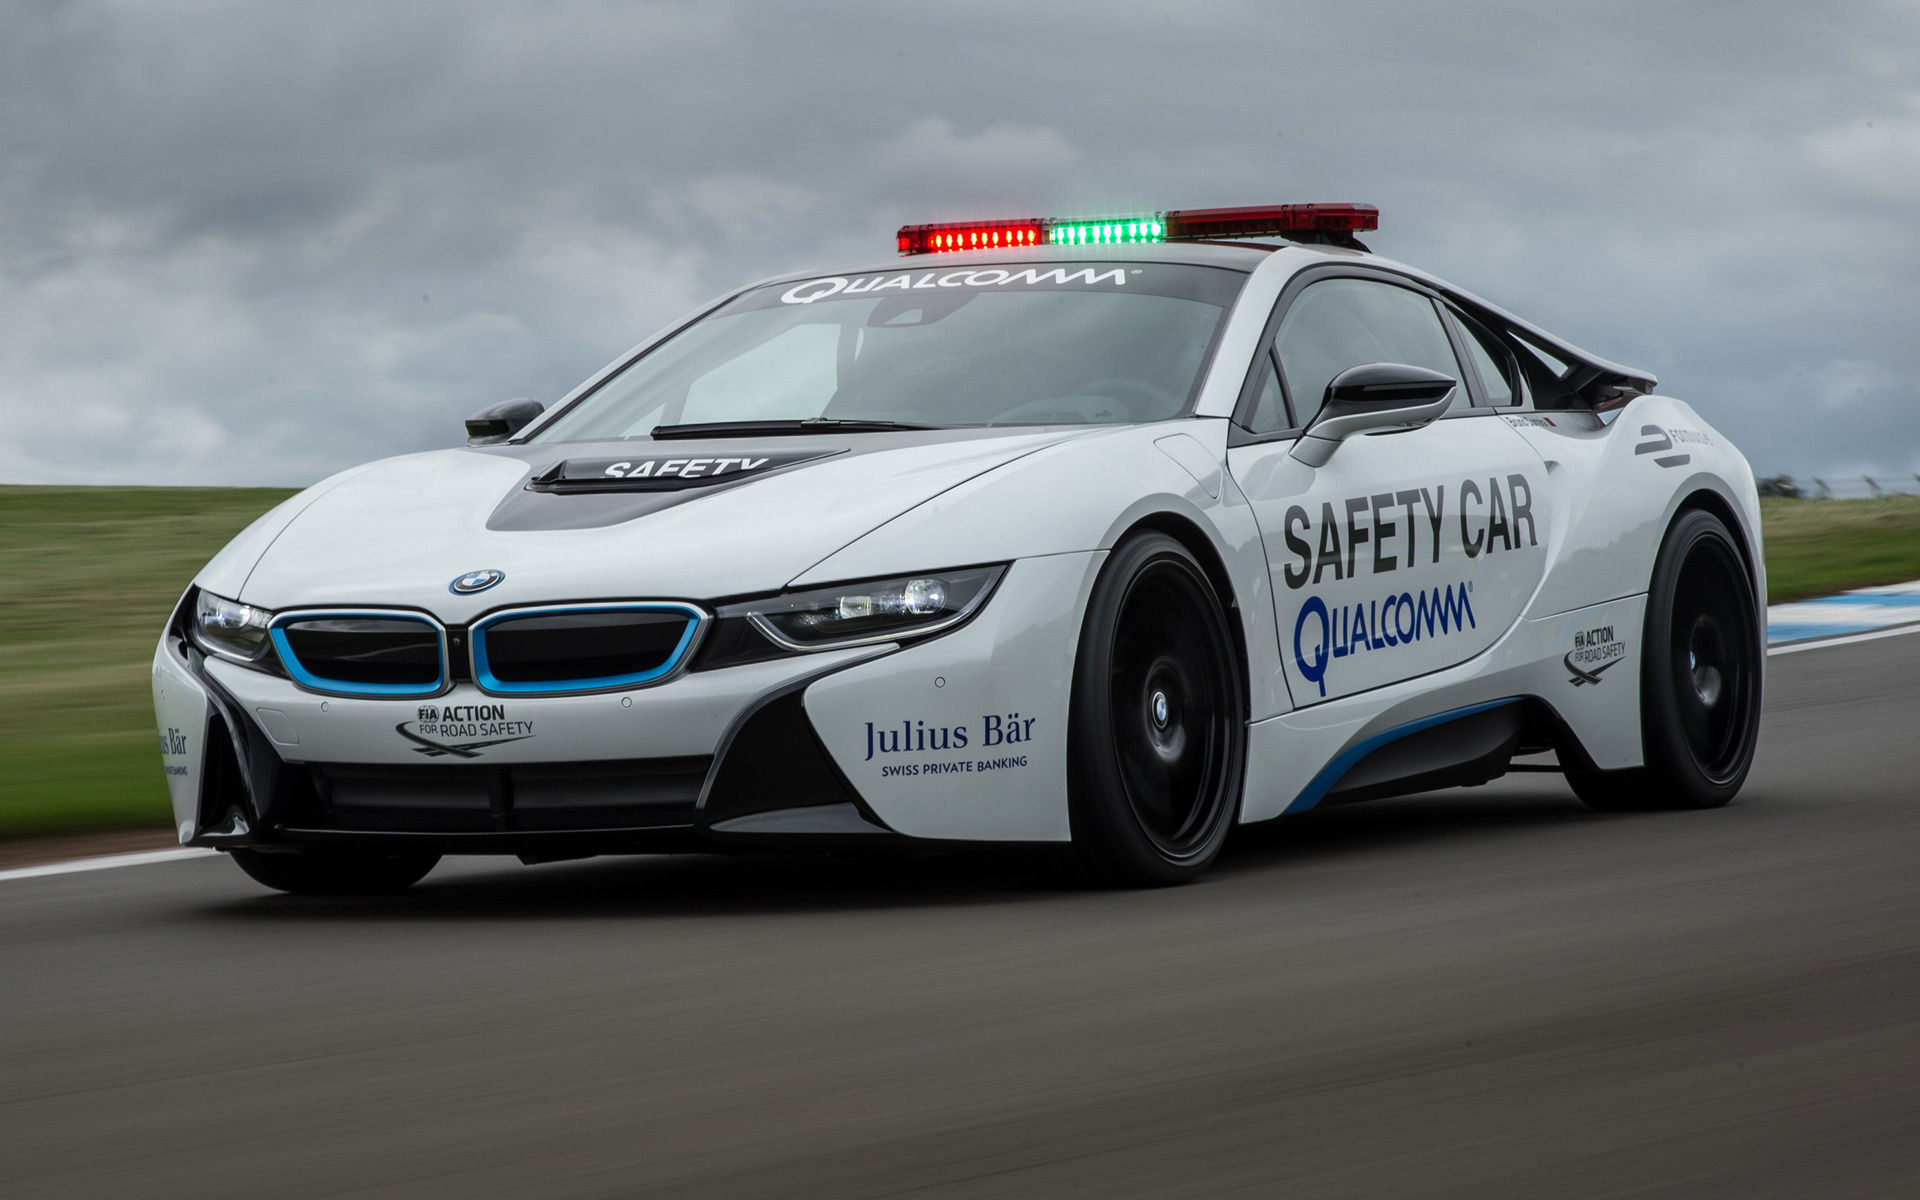 2014 Bmw I8 Formula E Safety Car Wallpapers And Hd